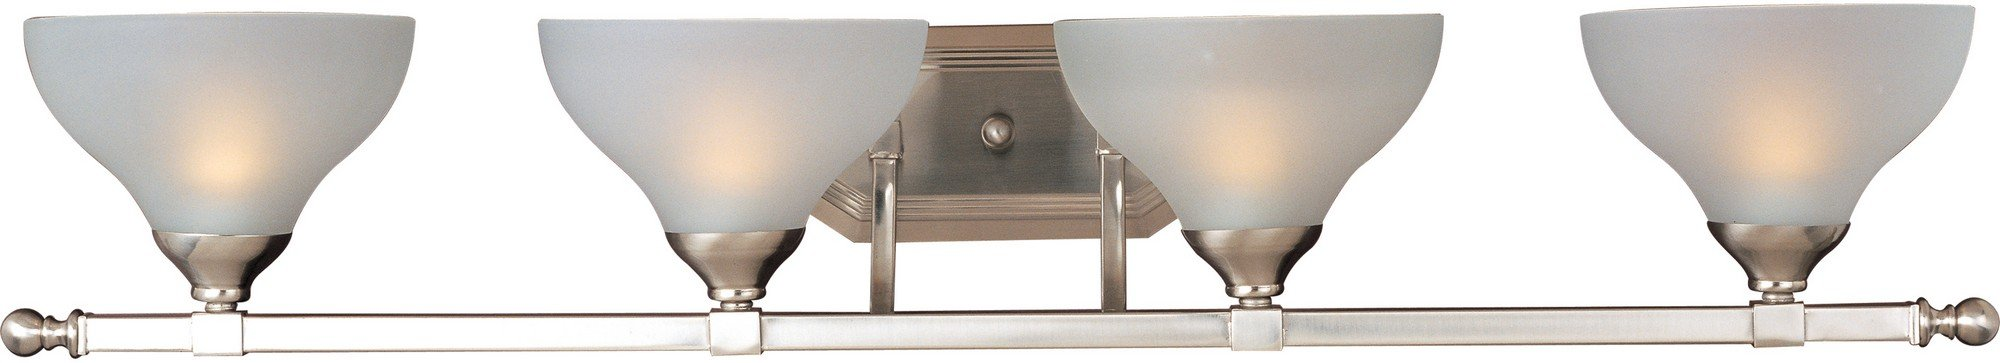 Maxim 21274FTSN Contour 4-Light Bath Vanity, Satin Nickel Finish, Frosted Glass, MB Incandescent Incandescent Bulb , 60W Max., Dry Safety Rating, Standard Dimmable, Opal Acrylic Shade Material, Rated Lumens